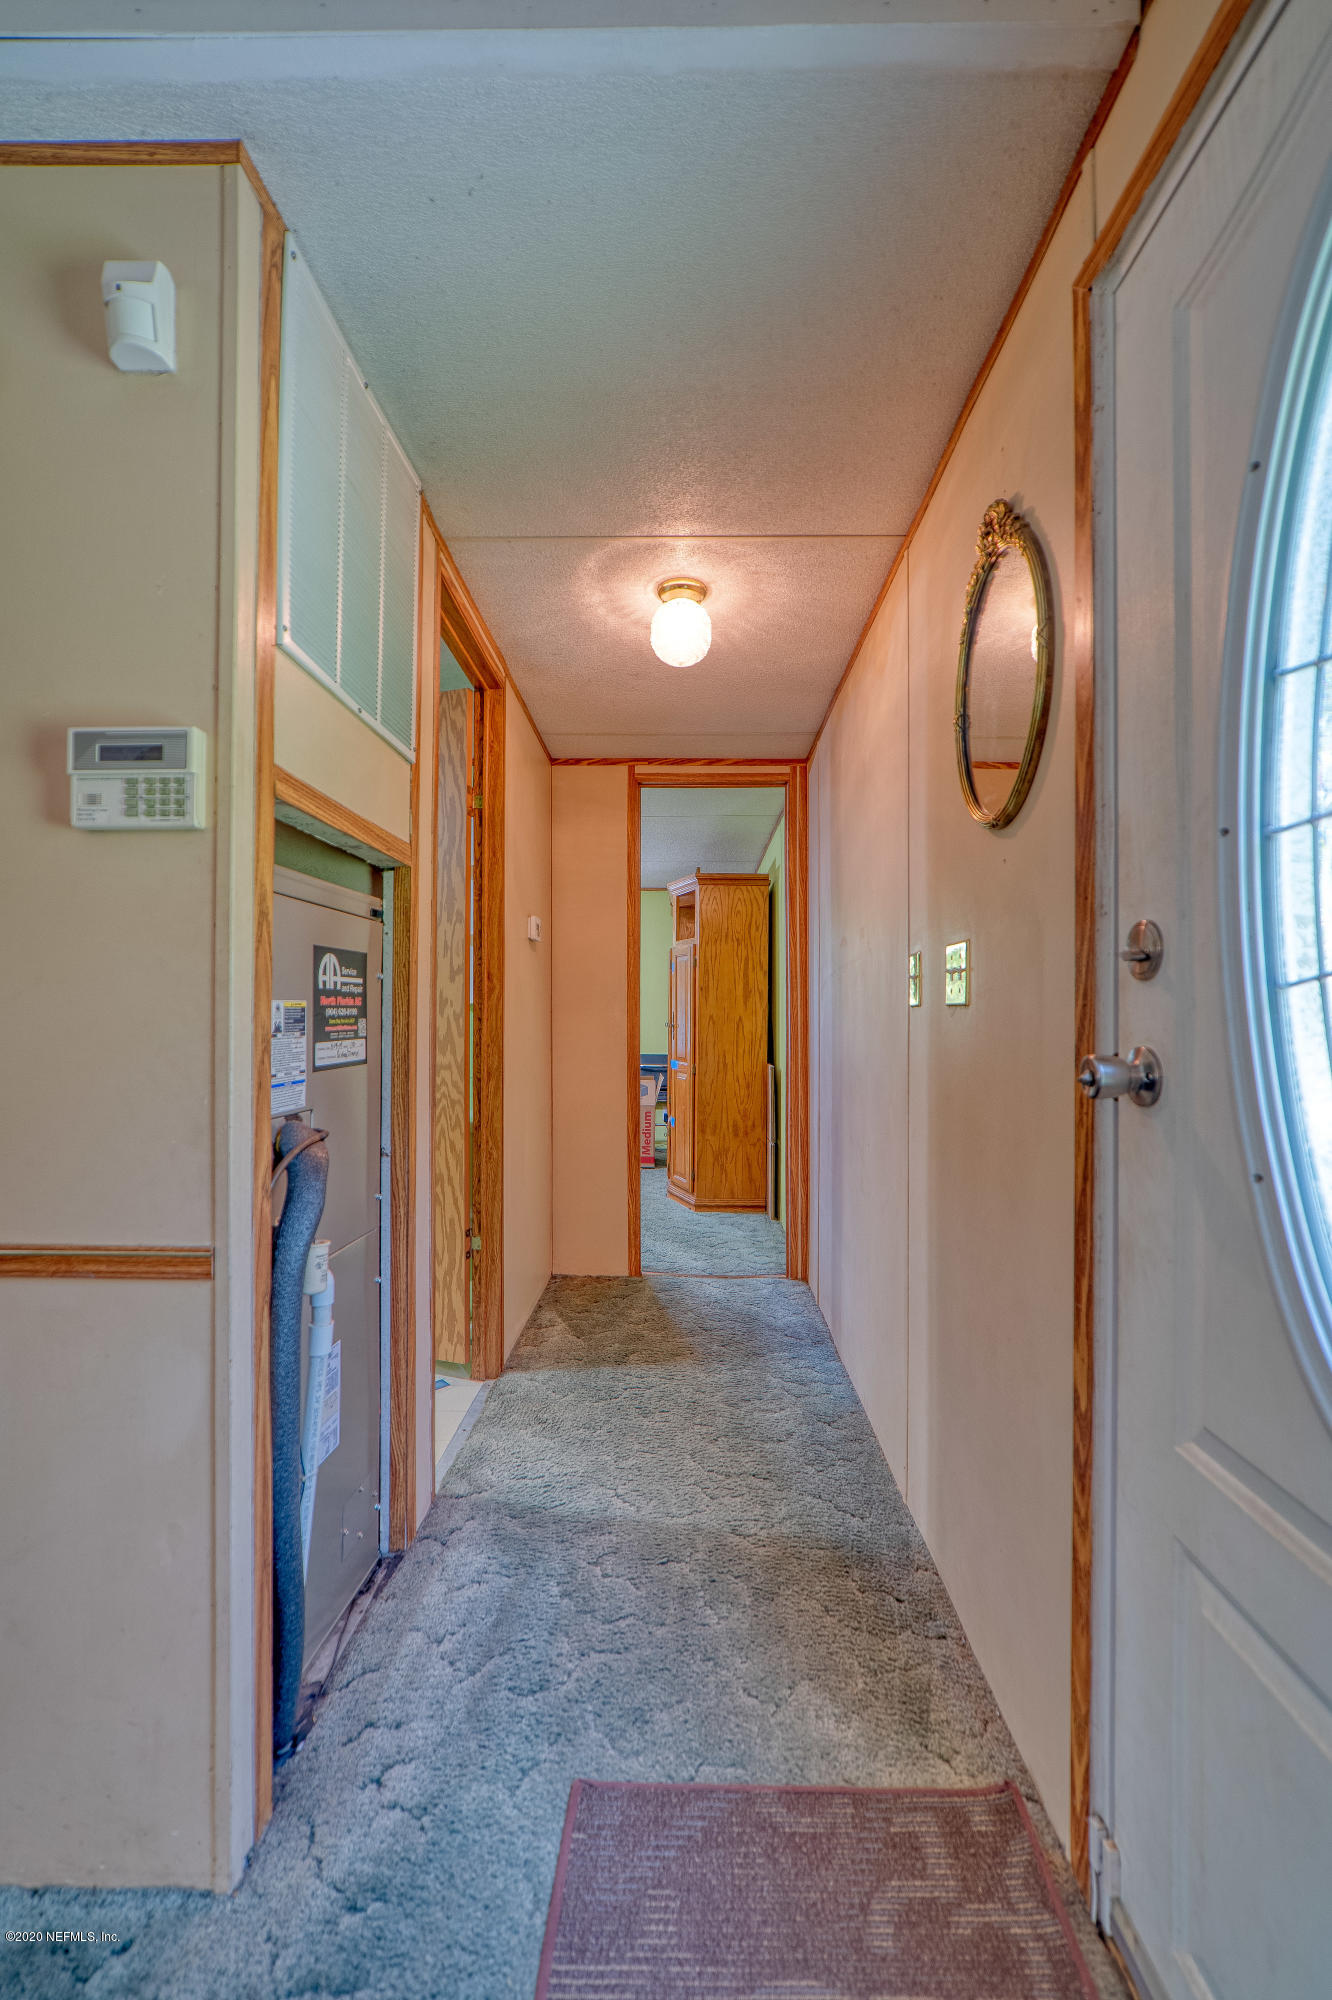 8228 PAXTON, JACKSONVILLE, FLORIDA 32219, 2 Bedrooms Bedrooms, ,2 BathroomsBathrooms,Residential,For sale,PAXTON,1064735